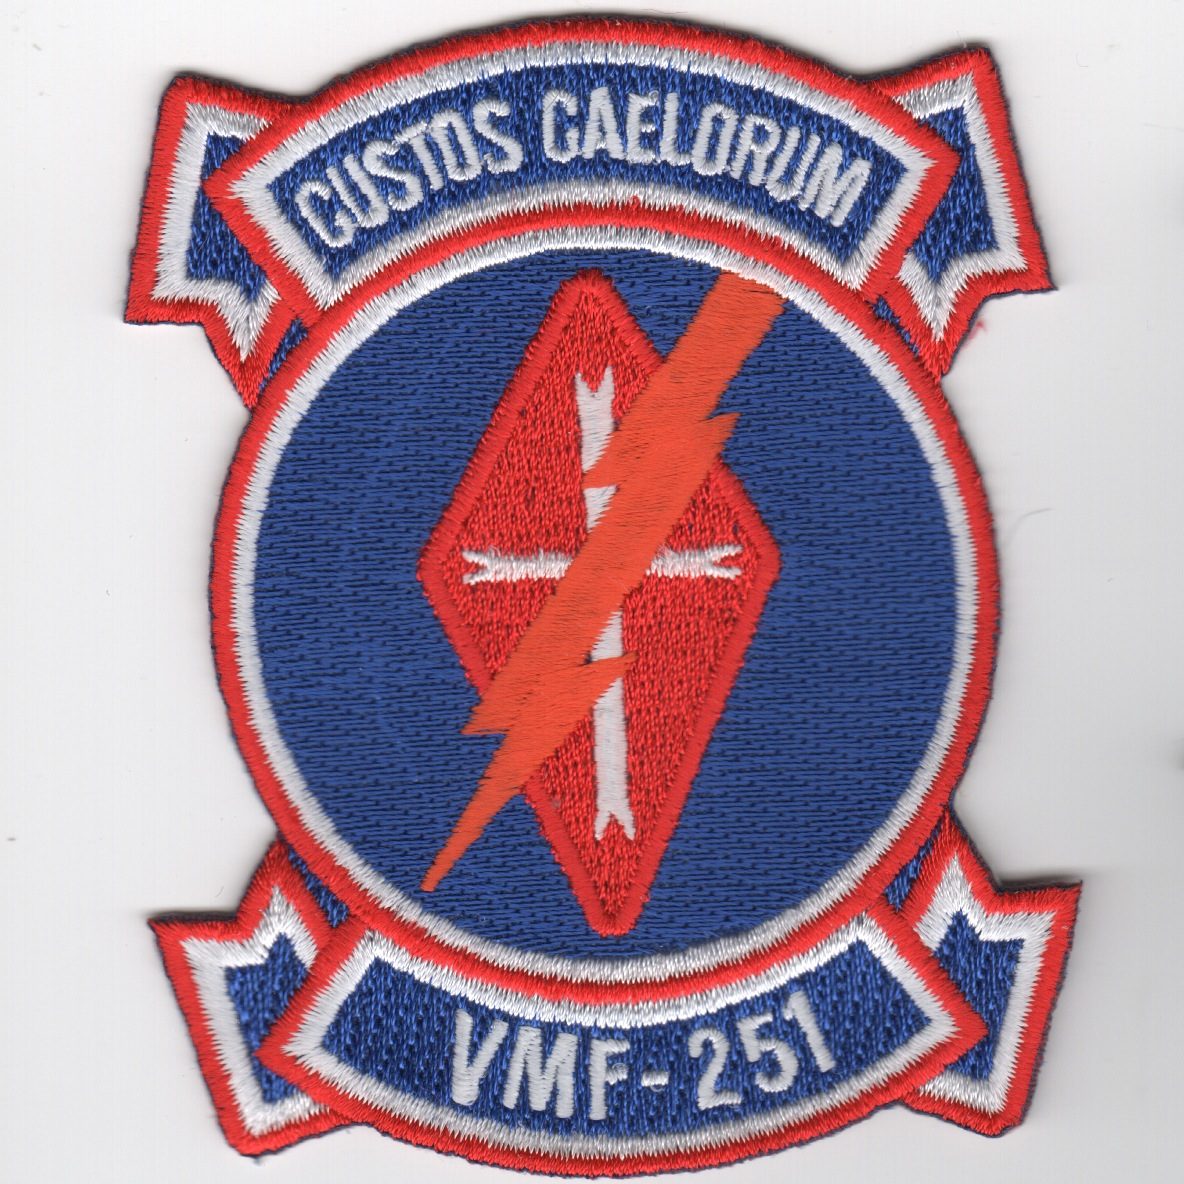 VMF-251 Squadron Patch